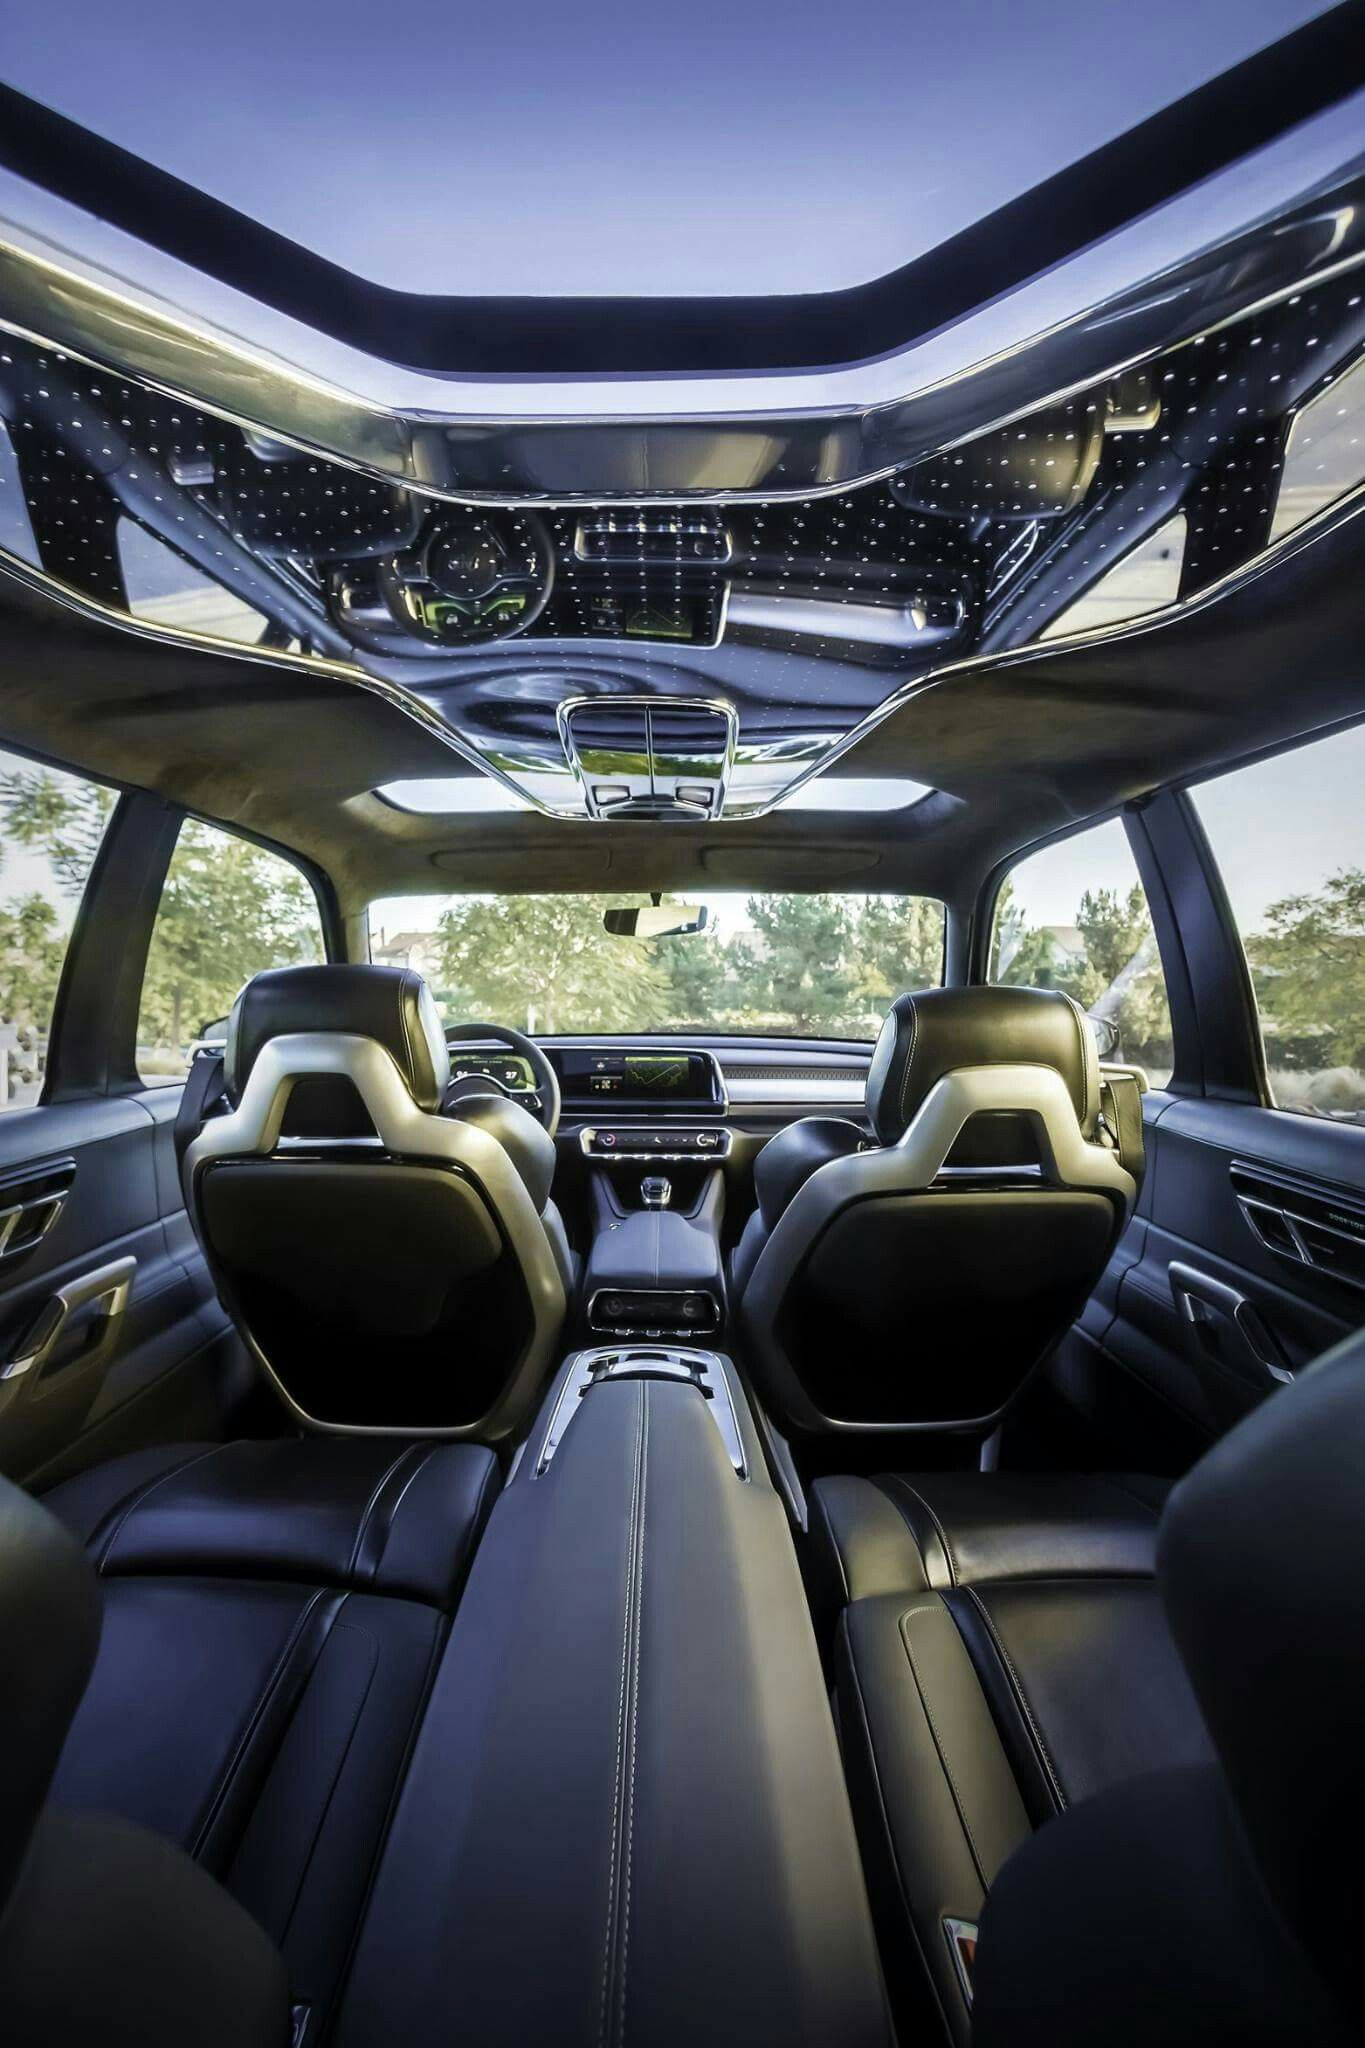 Kia Telluride Kia Luxury Car Interior Telluride